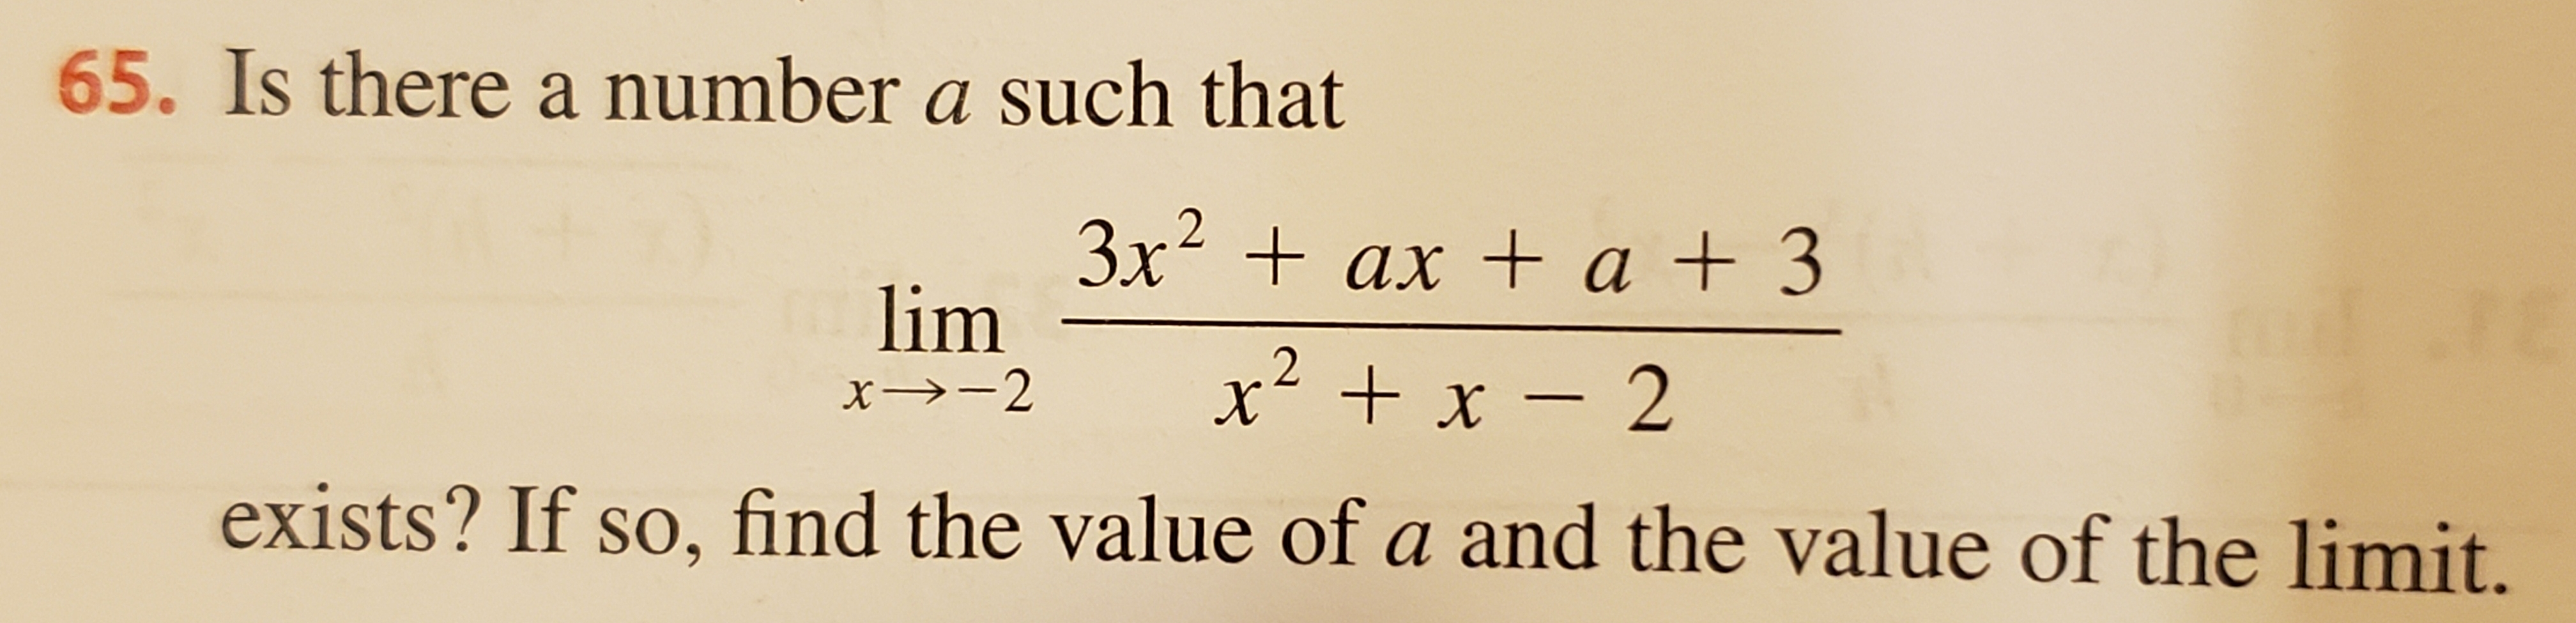 65. Is there a number a such that 3x2 ax a + 3 lim +x-2 exists? If so, find the value of a and the value of the limit.